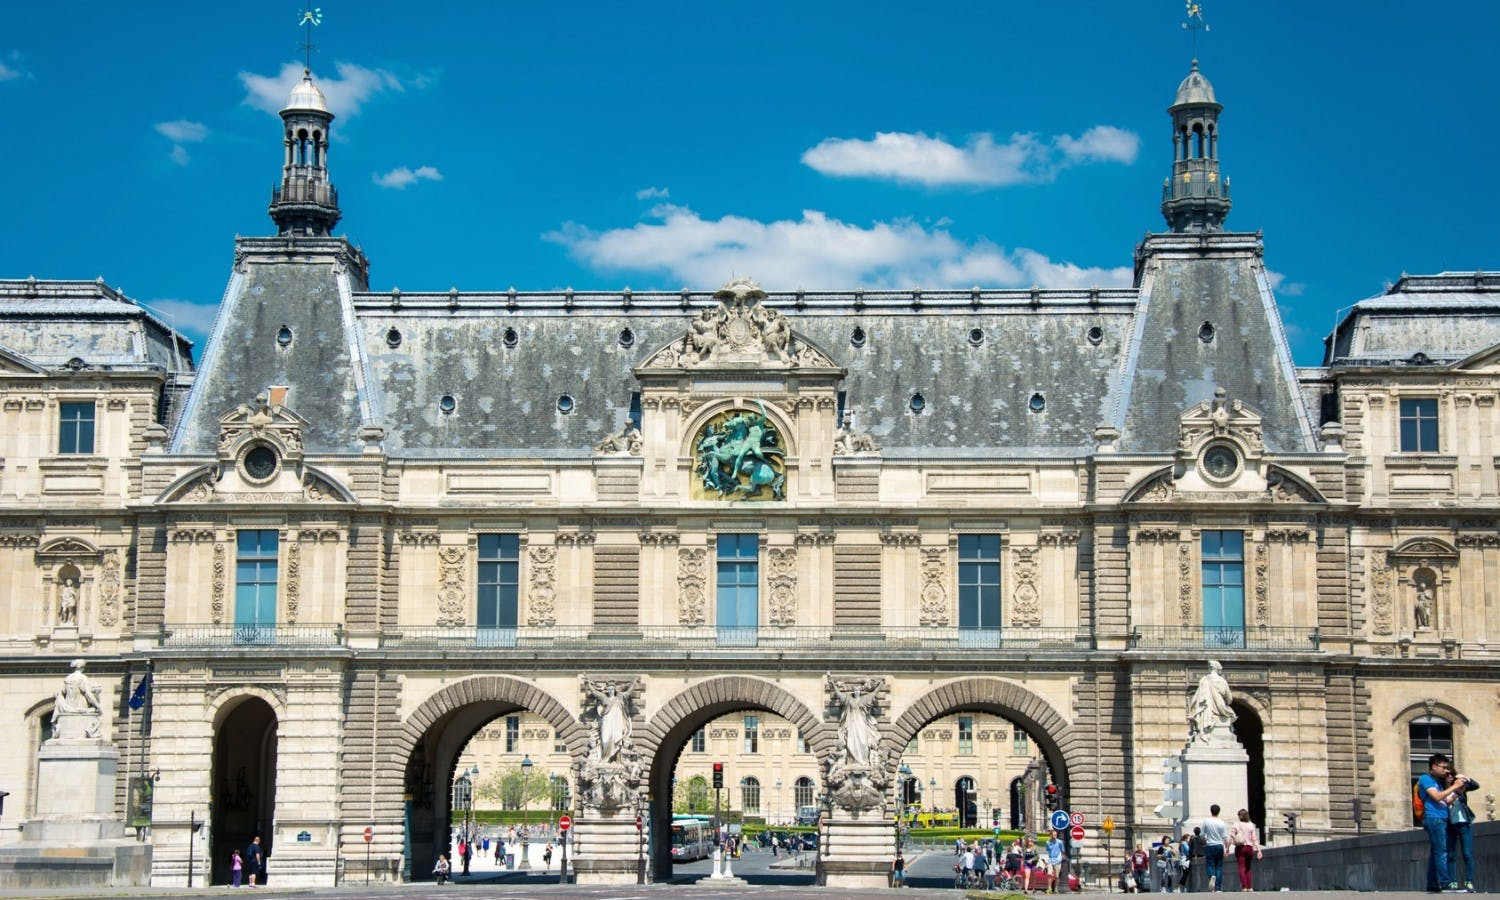 louvre-museum-vip-tickets-and-semi-private-guided-visit_header-19167